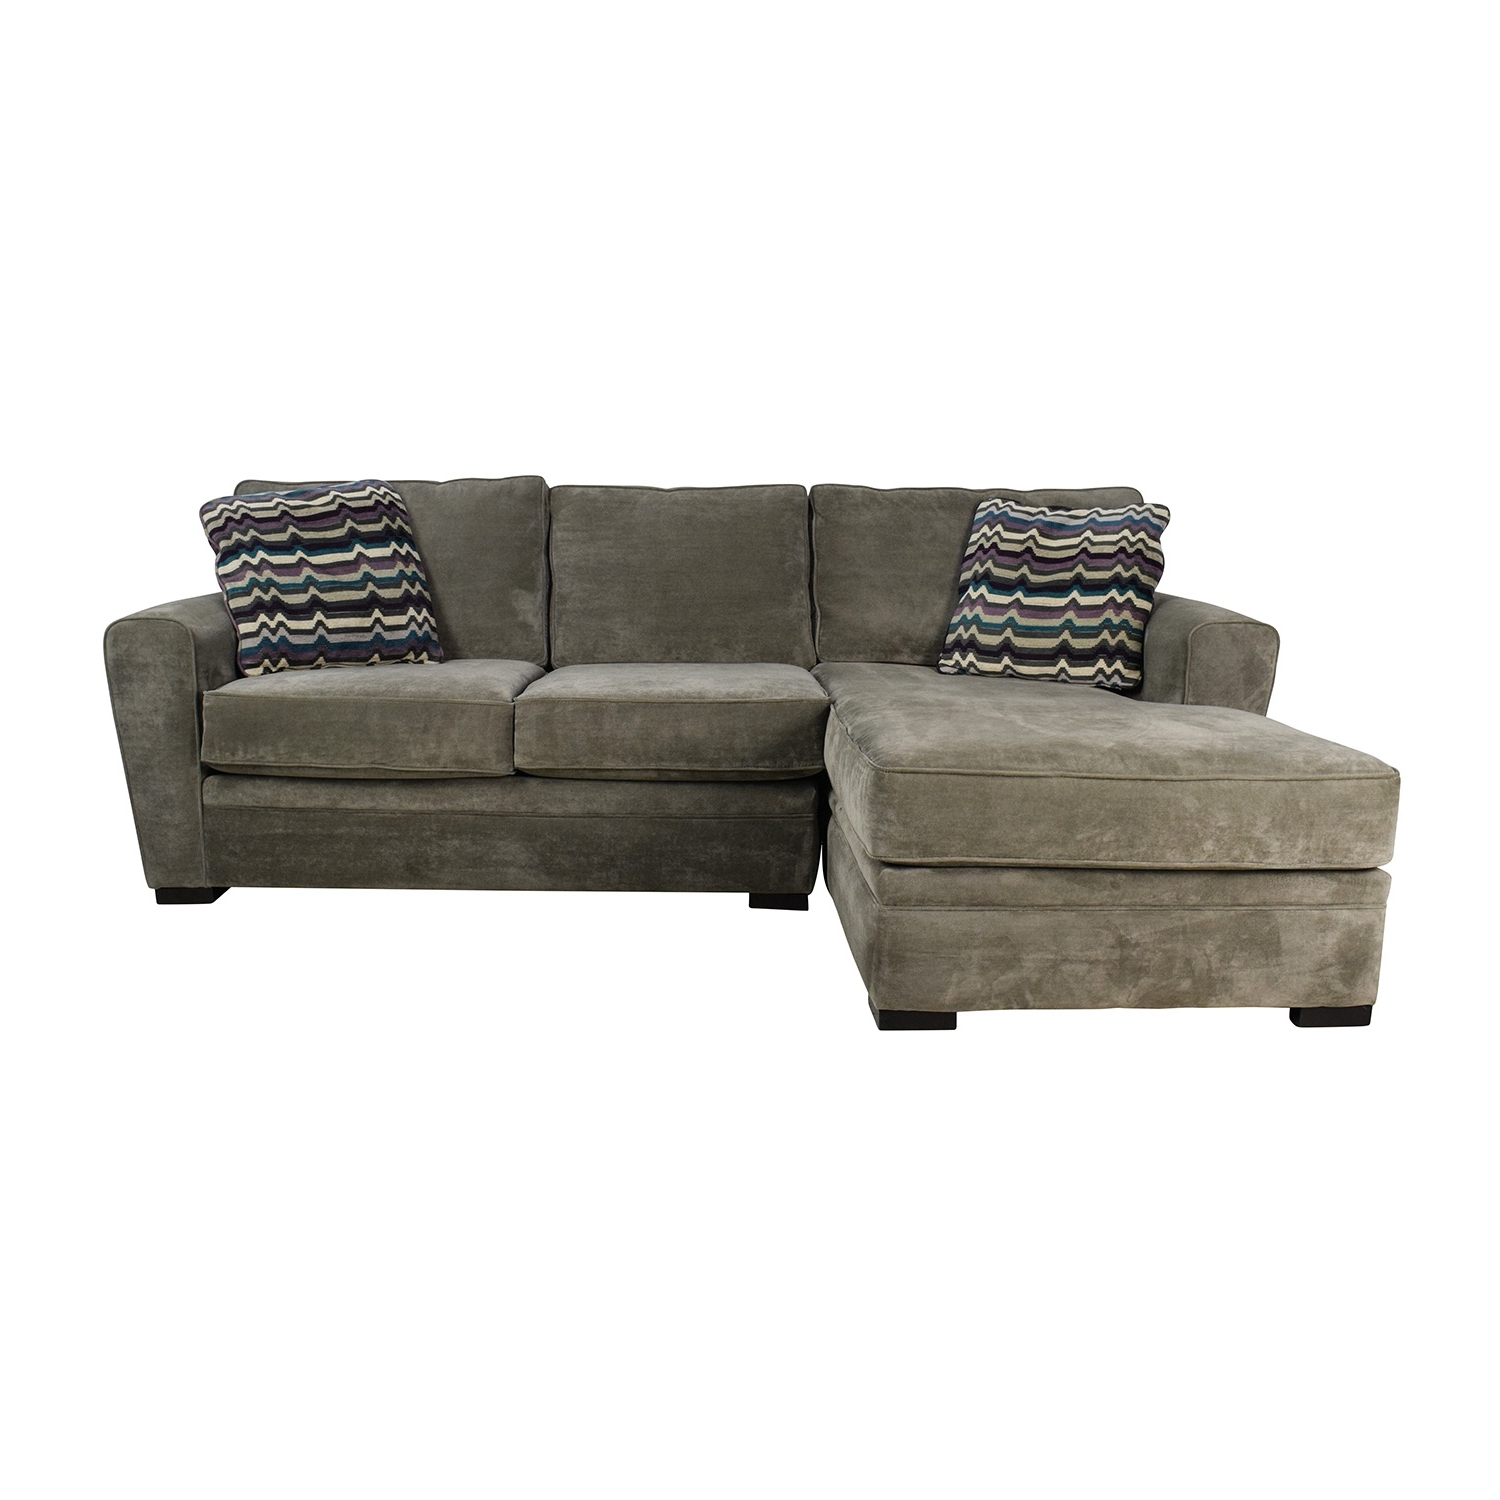 [%52% Off – Raymour & Flanigan Raymour & Flanigan Artemis Ii With Regard To Favorite Raymour And Flanigan Sectional Sofas|Raymour And Flanigan Sectional Sofas Pertaining To Favorite 52% Off – Raymour & Flanigan Raymour & Flanigan Artemis Ii|Preferred Raymour And Flanigan Sectional Sofas Inside 52% Off – Raymour & Flanigan Raymour & Flanigan Artemis Ii|Best And Newest 52% Off – Raymour & Flanigan Raymour & Flanigan Artemis Ii Intended For Raymour And Flanigan Sectional Sofas%] (View 3 of 20)